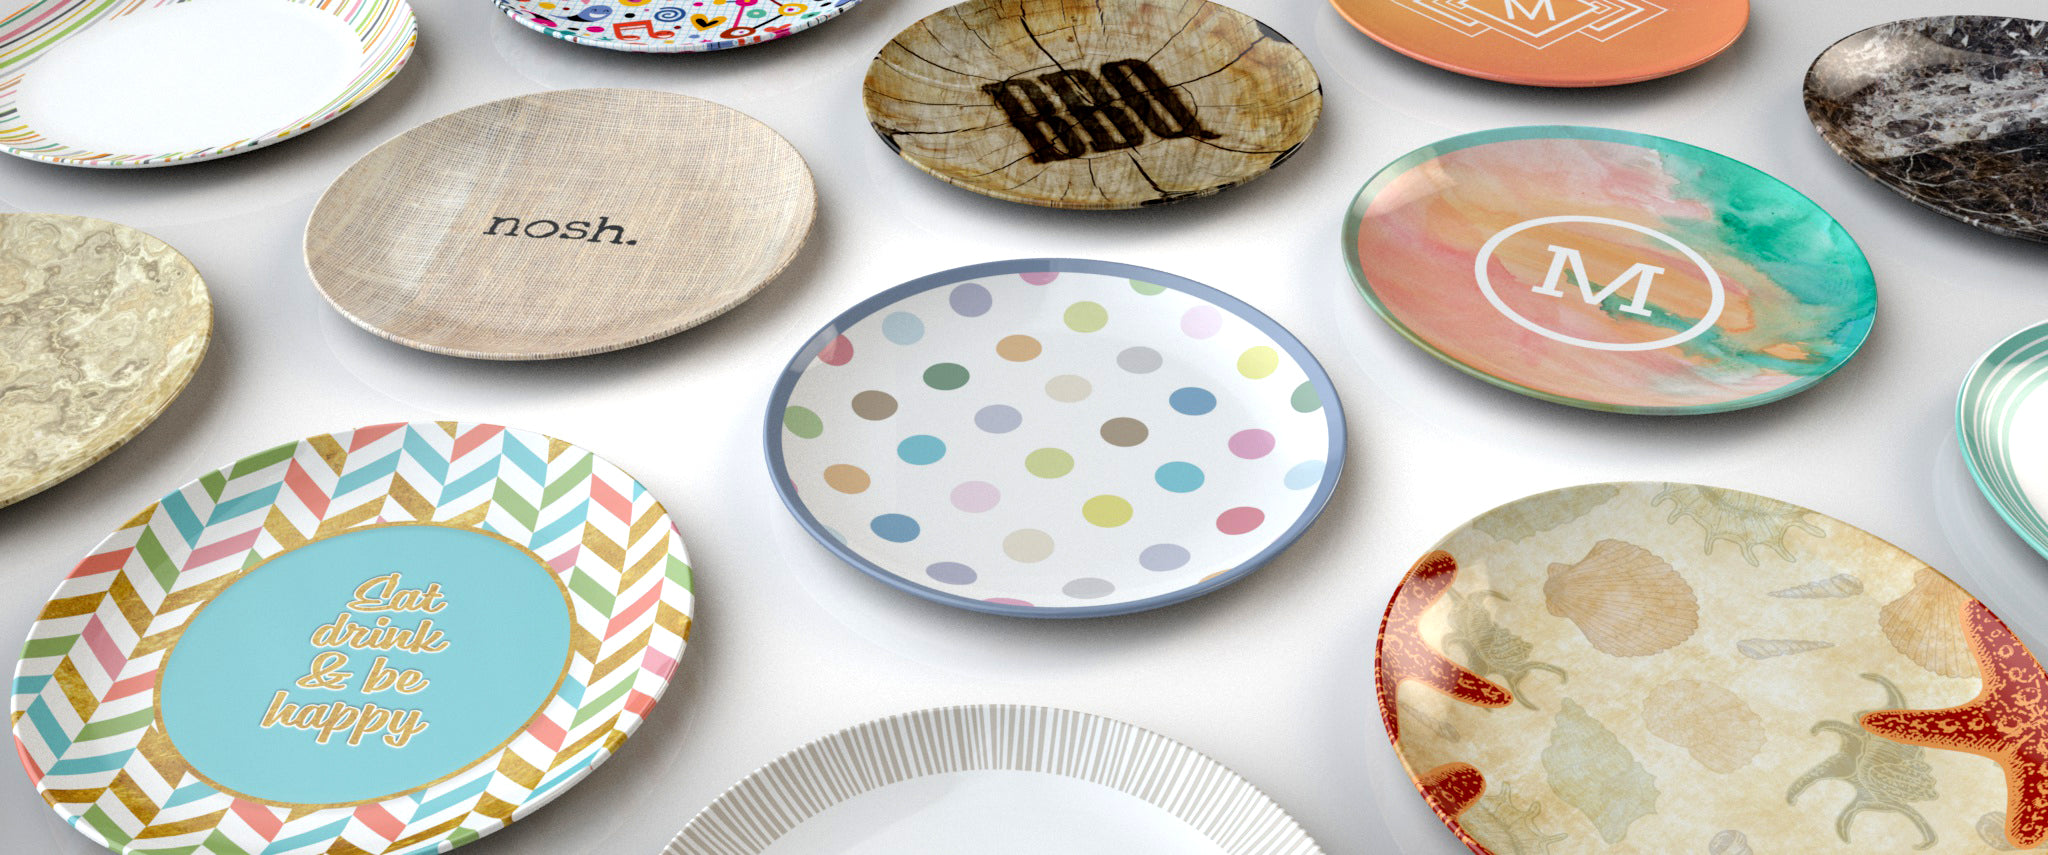 cute personalized plates unique gift idea